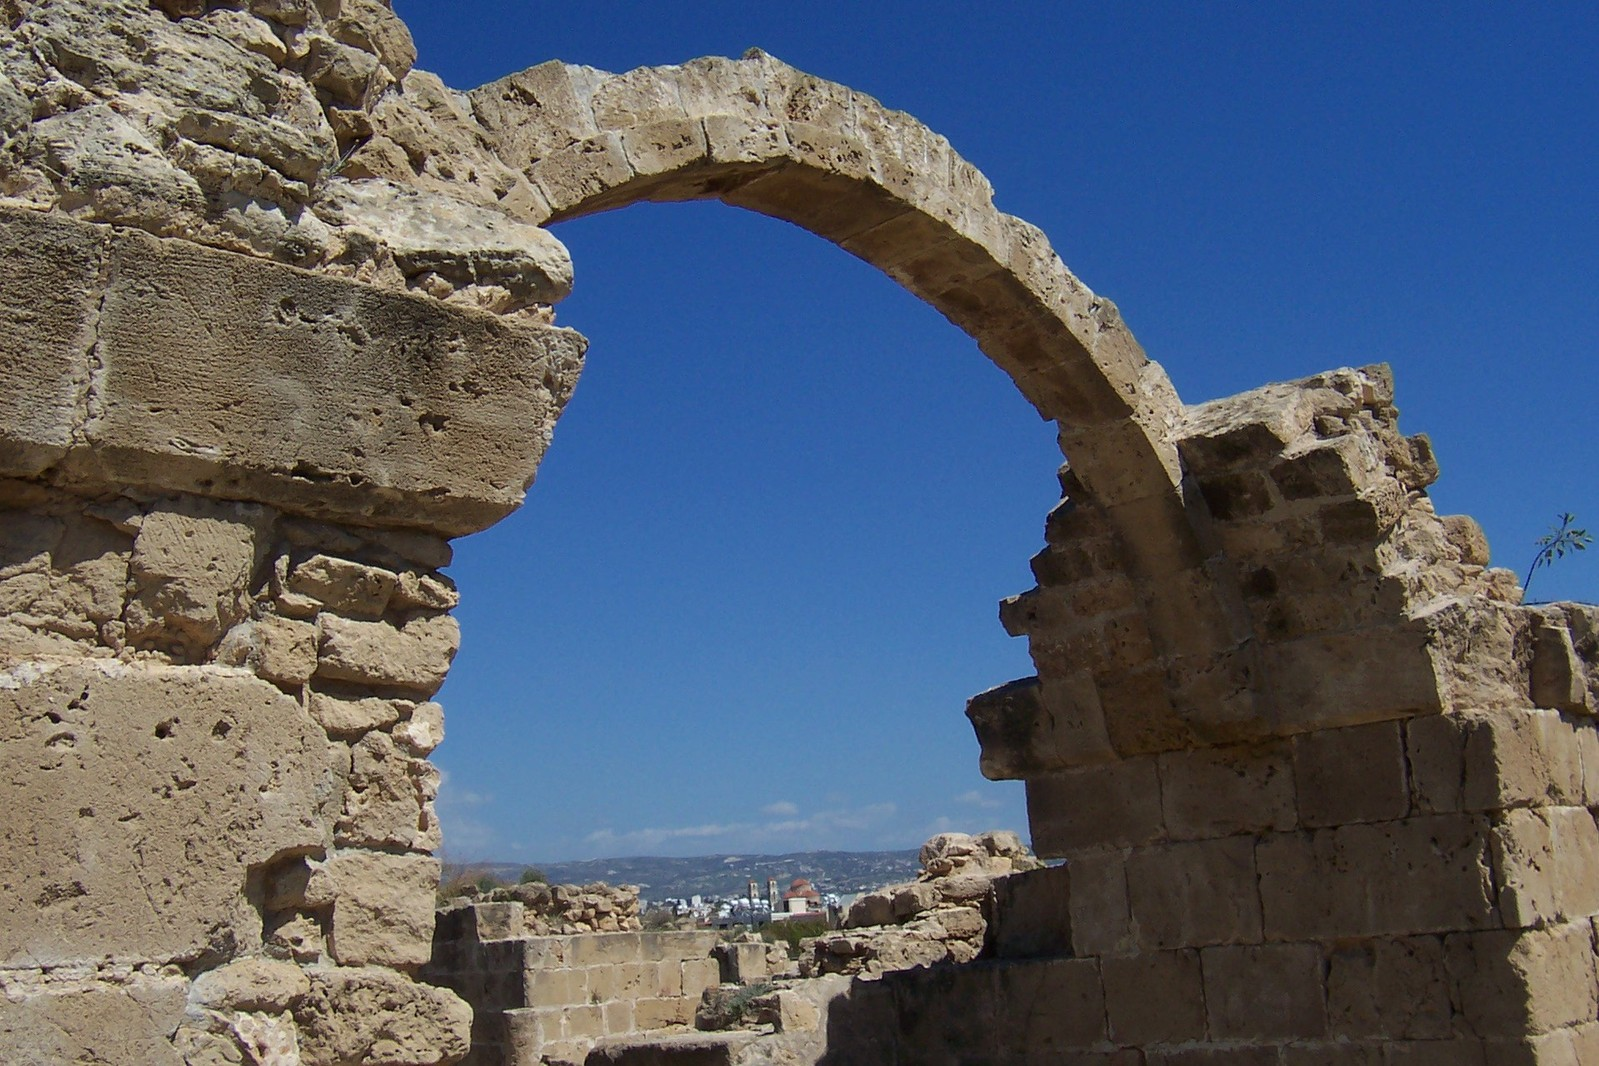 """Photograph of a stone archway set against a blue sky, accompanying the FROM HUMBLE ORIGINS FHOLOGUE blog post """"REALISE YOUR UNIQUE PERSONAL HERITAGE"""". Image copyright www.freeimages.com / hiltonius."""